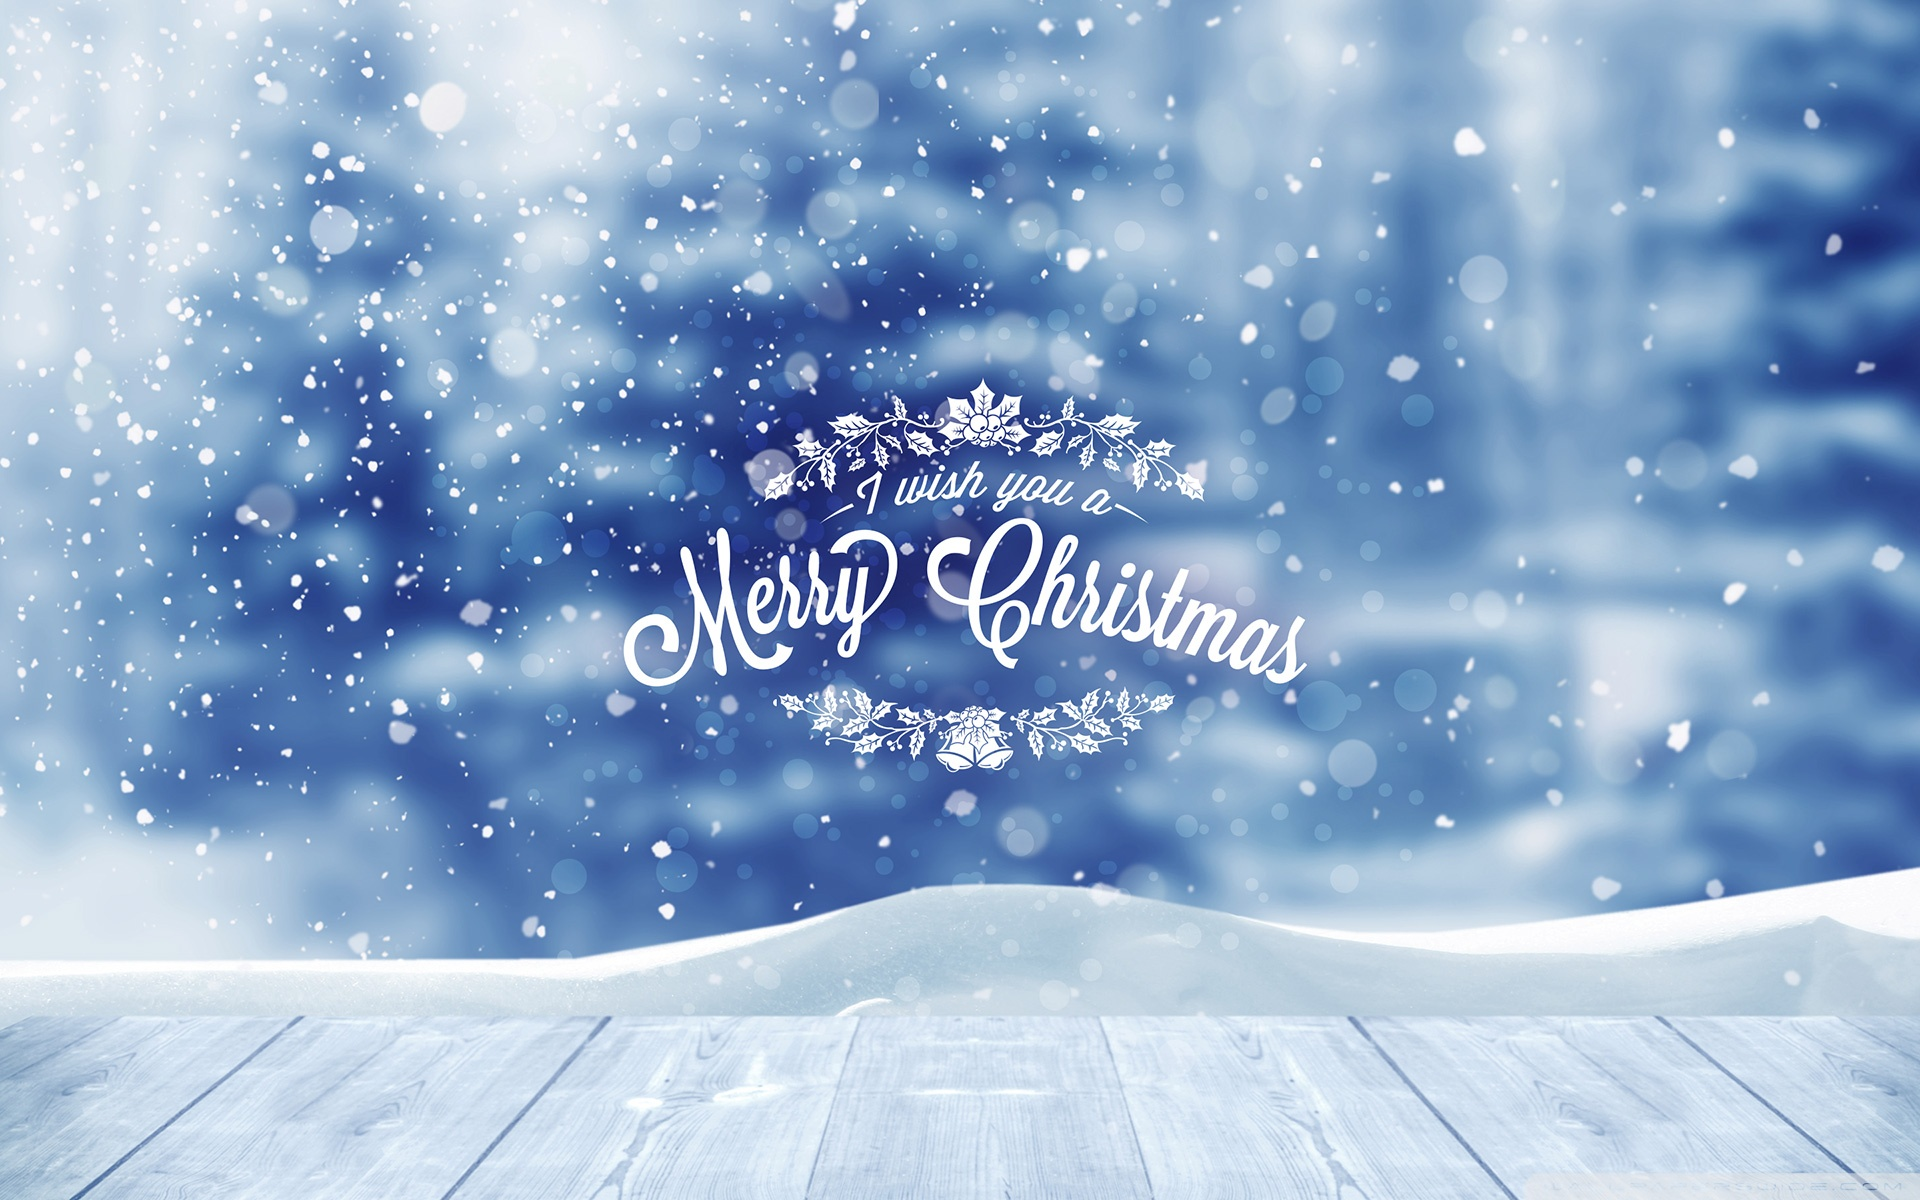 I wish you a Merry Christmas by PimpYourScreen 4K HD Desktop 1920x1200